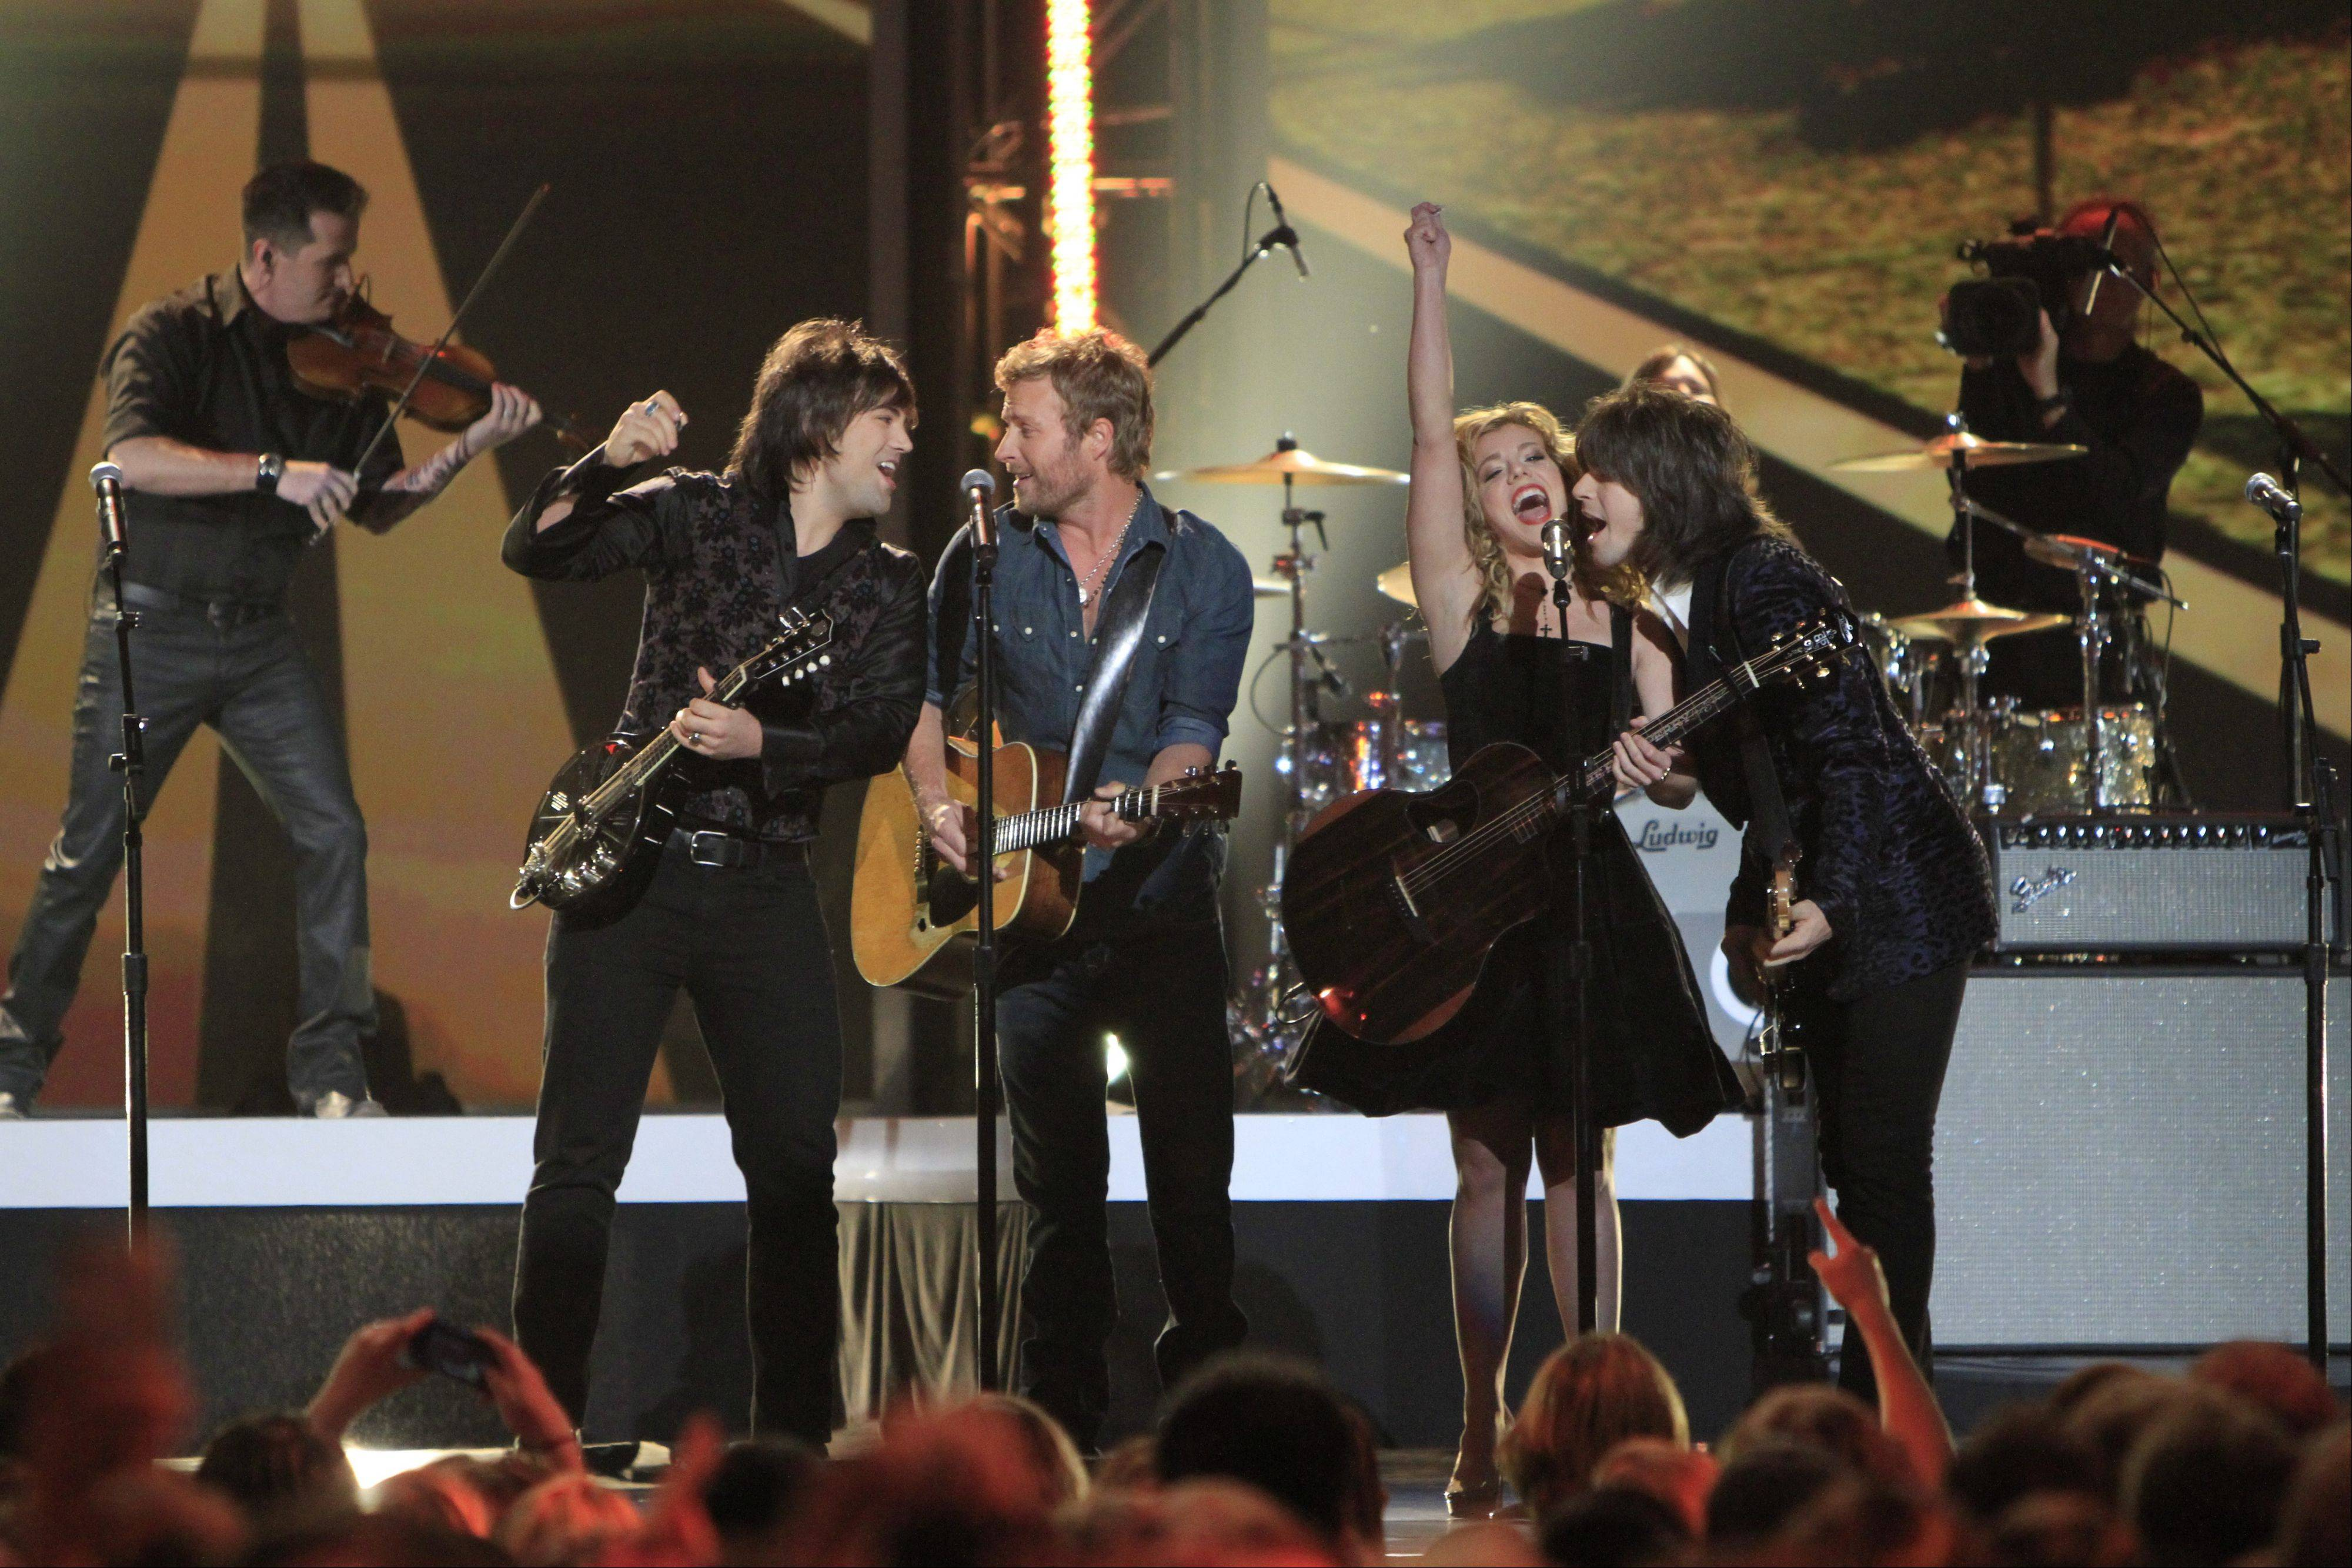 Dierks Bentley, second from left, and from left, Neil Perry, Kimberly Perry and Reid Perry, of The Band Perry, perform at the Grammy Nominations Concert Live! at Bridgestone Arena on Wednesday night in Nashville.